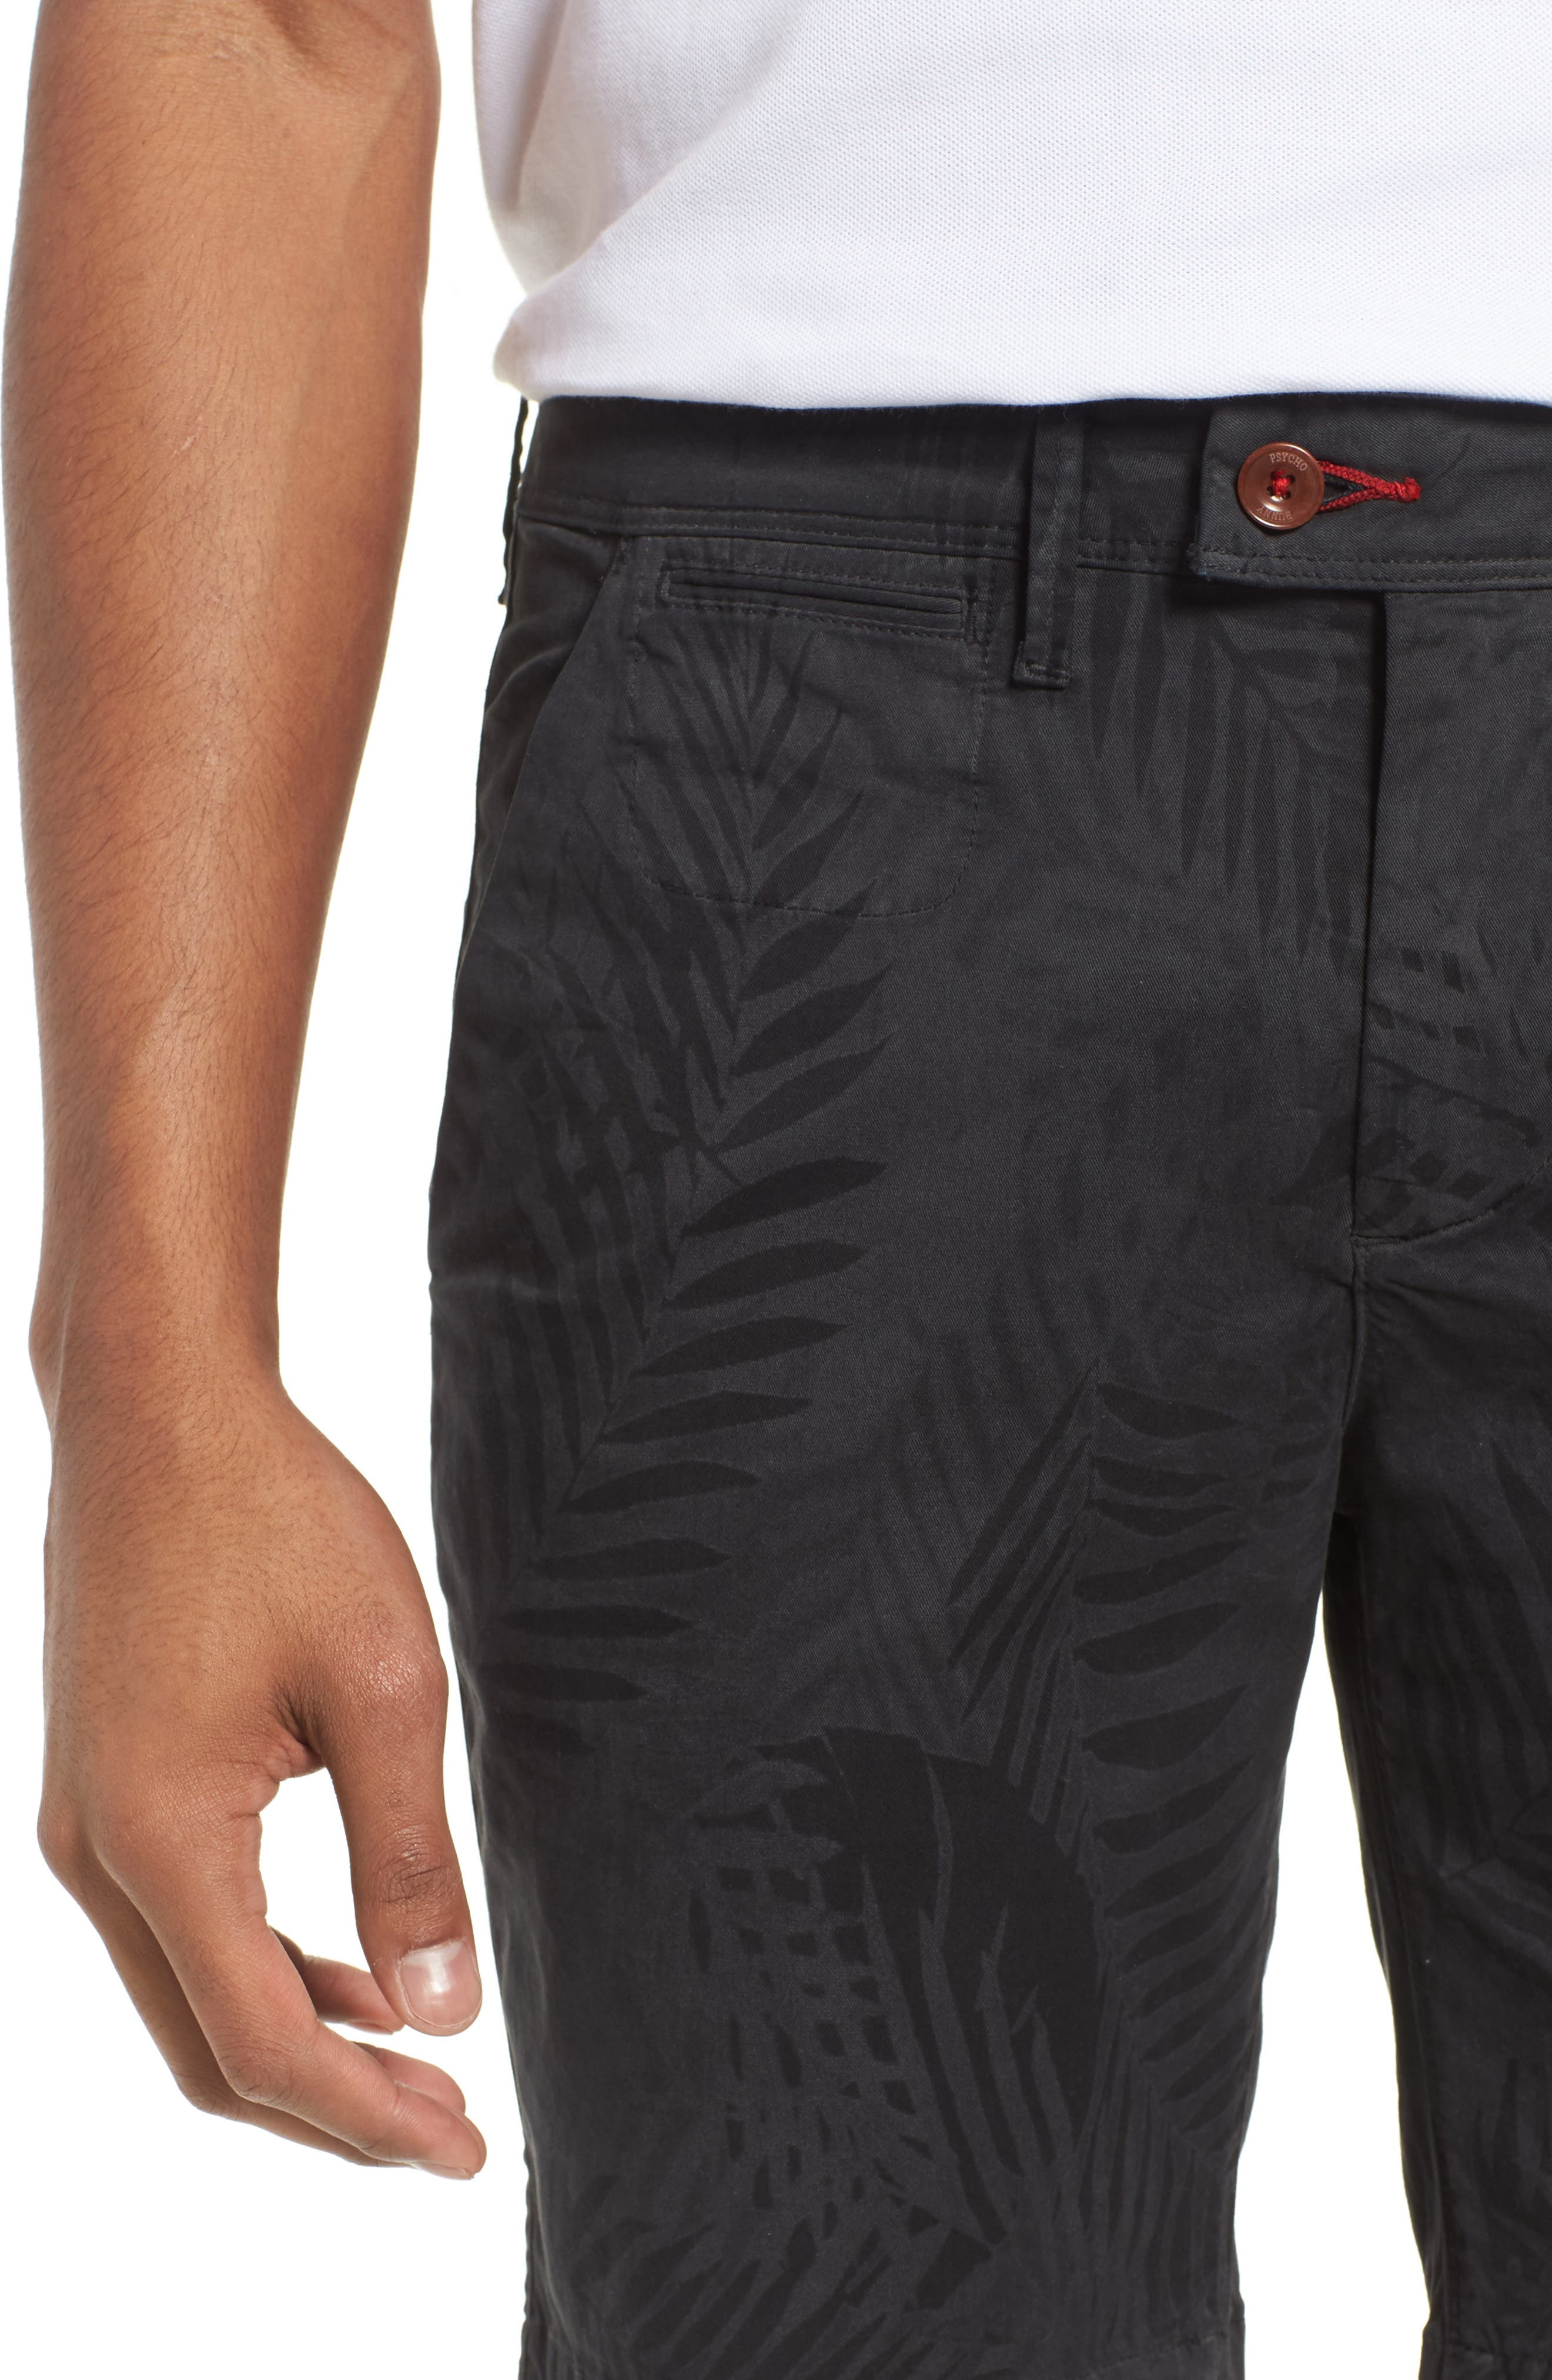 Psycho Bunny Tropical Shorts,                             Alternate thumbnail 4, color,                             Black